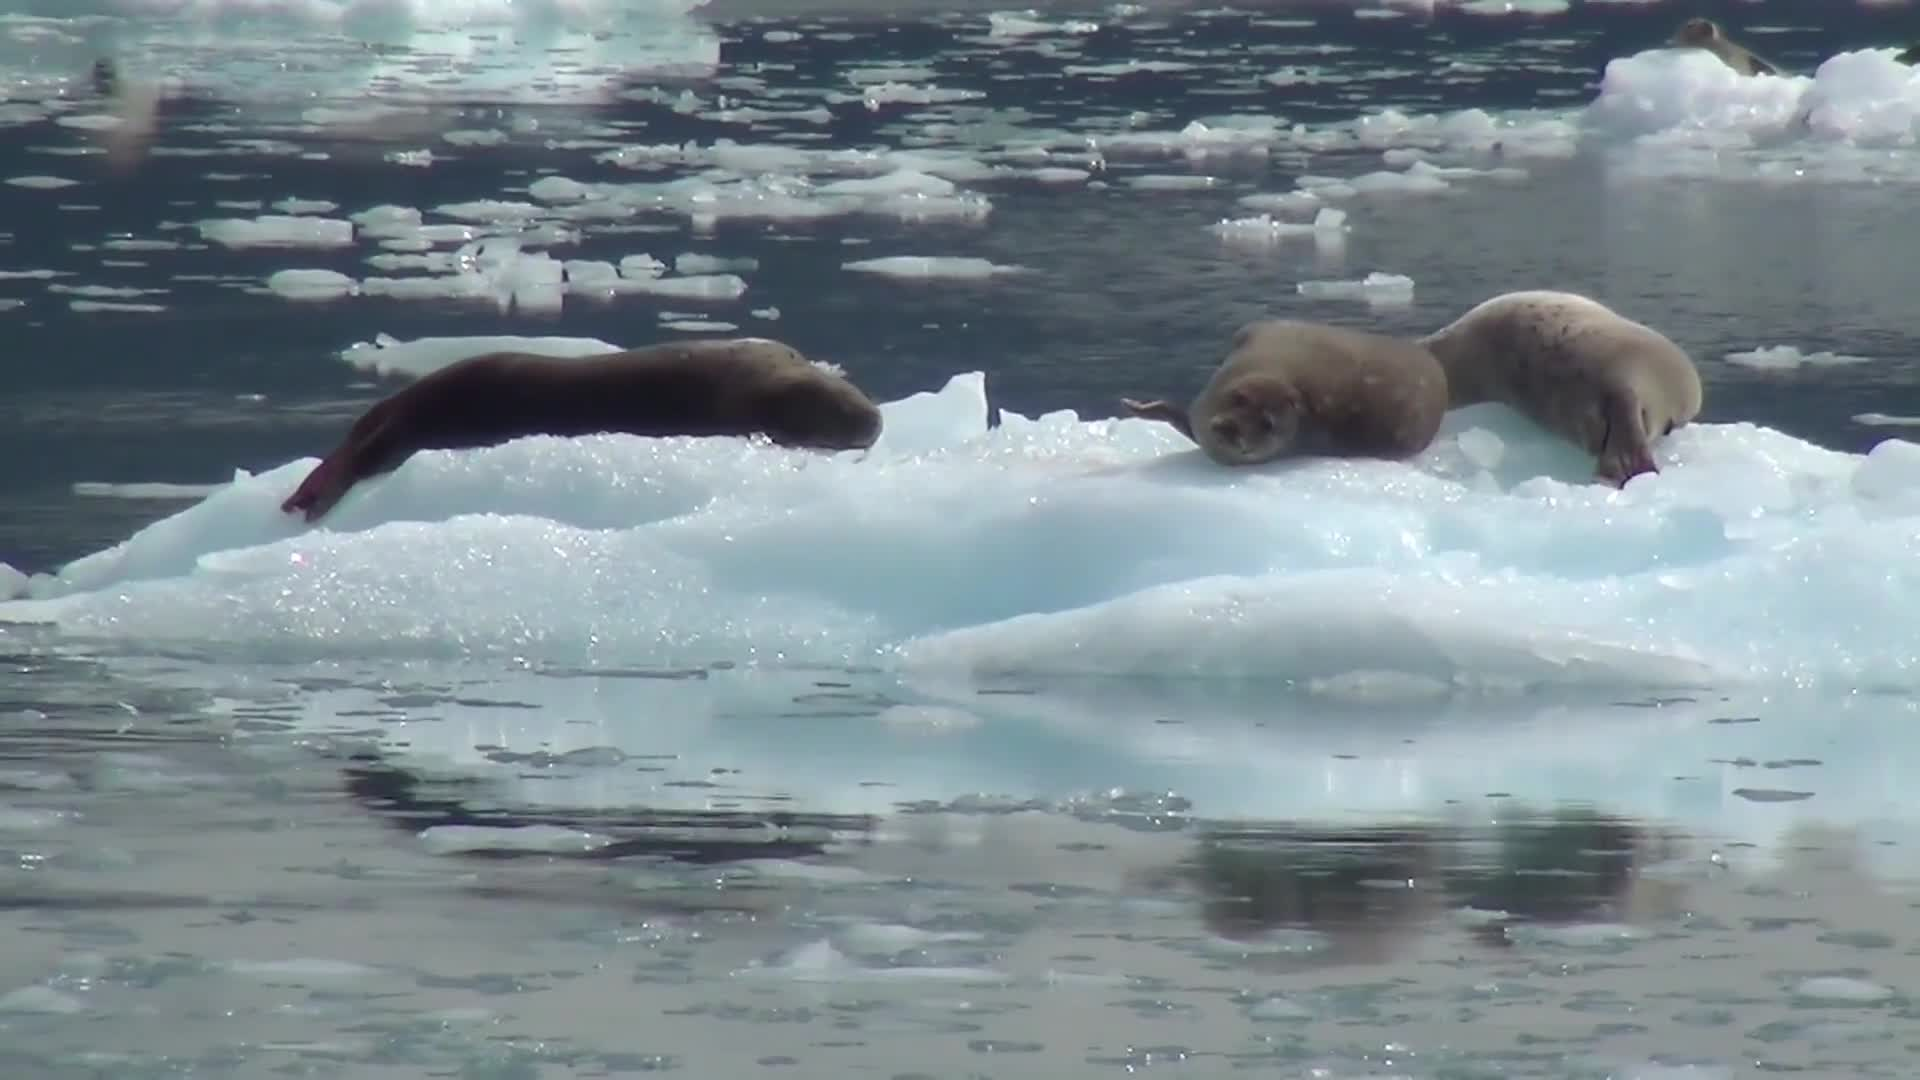 Sea lions lion alaska ice floe nature